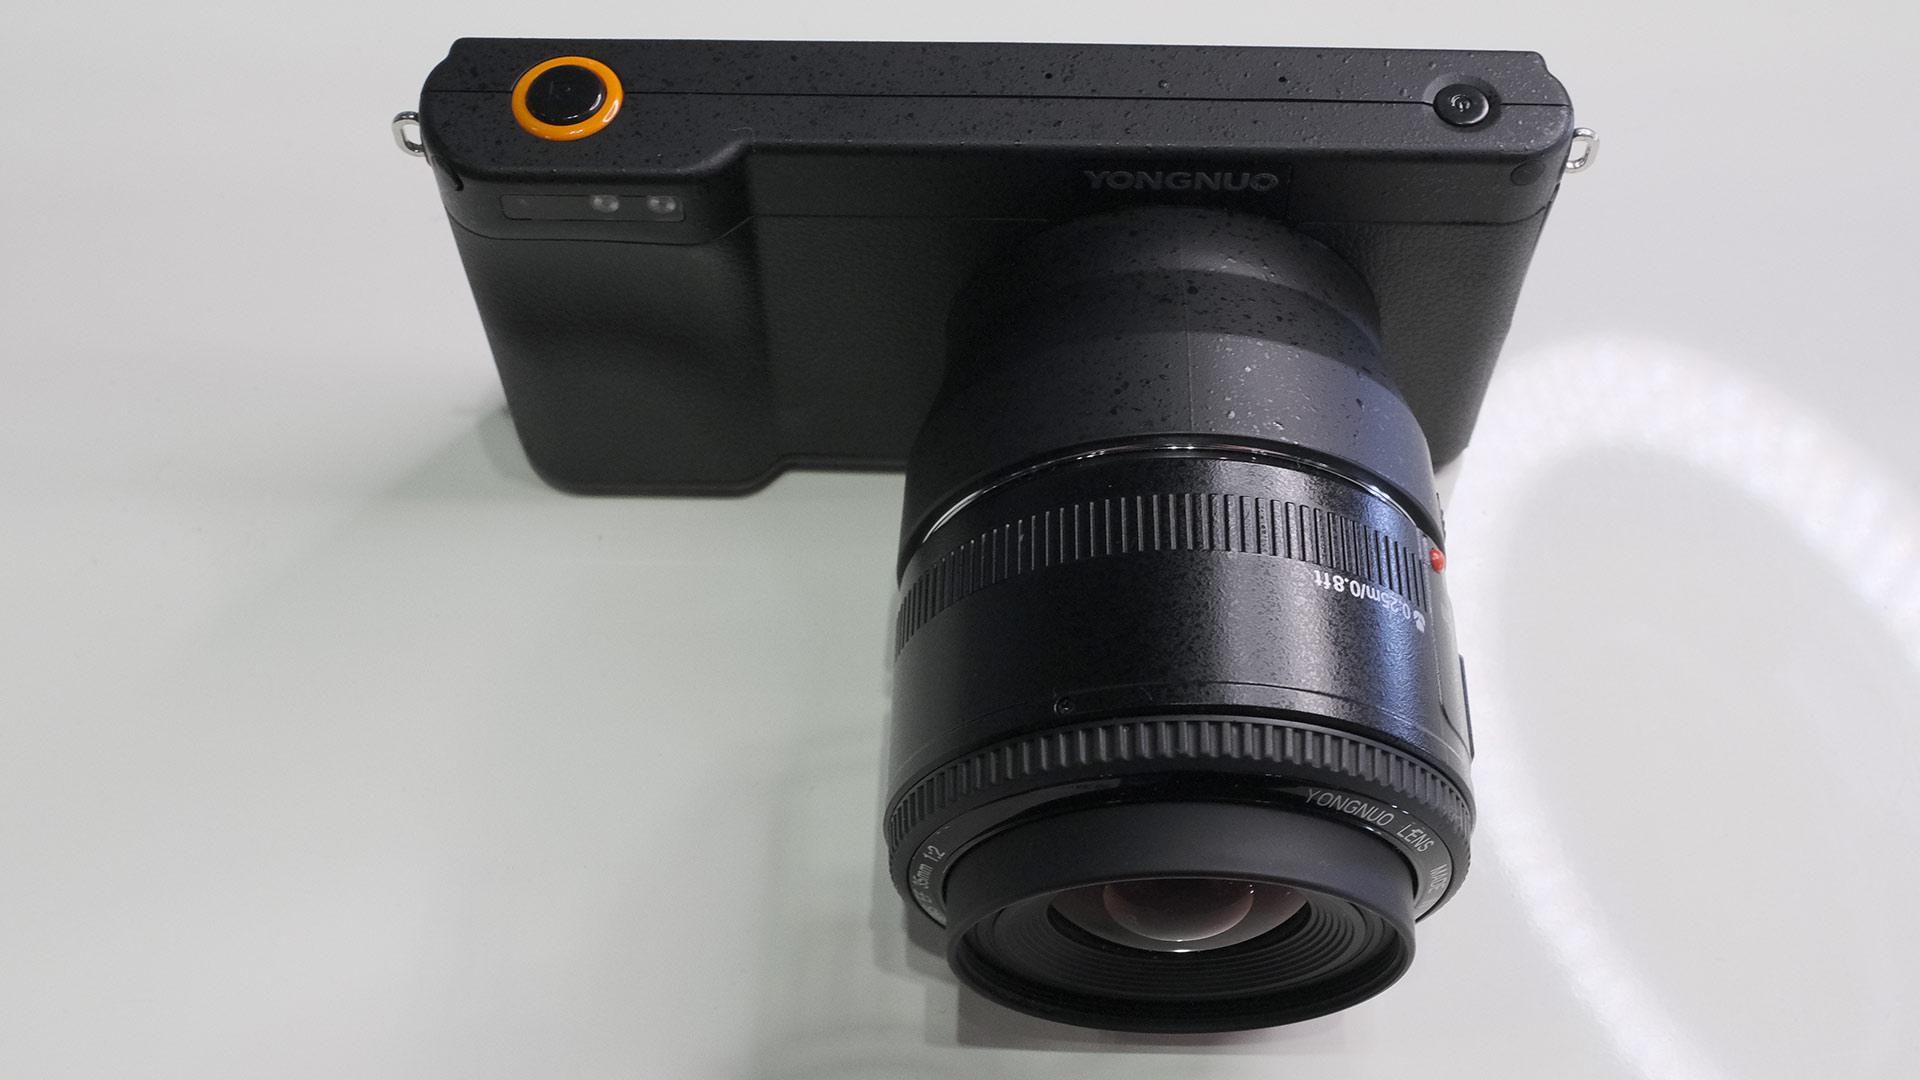 Yongnuo YN450 Android Camera Explained - Micro 4/3 and EF